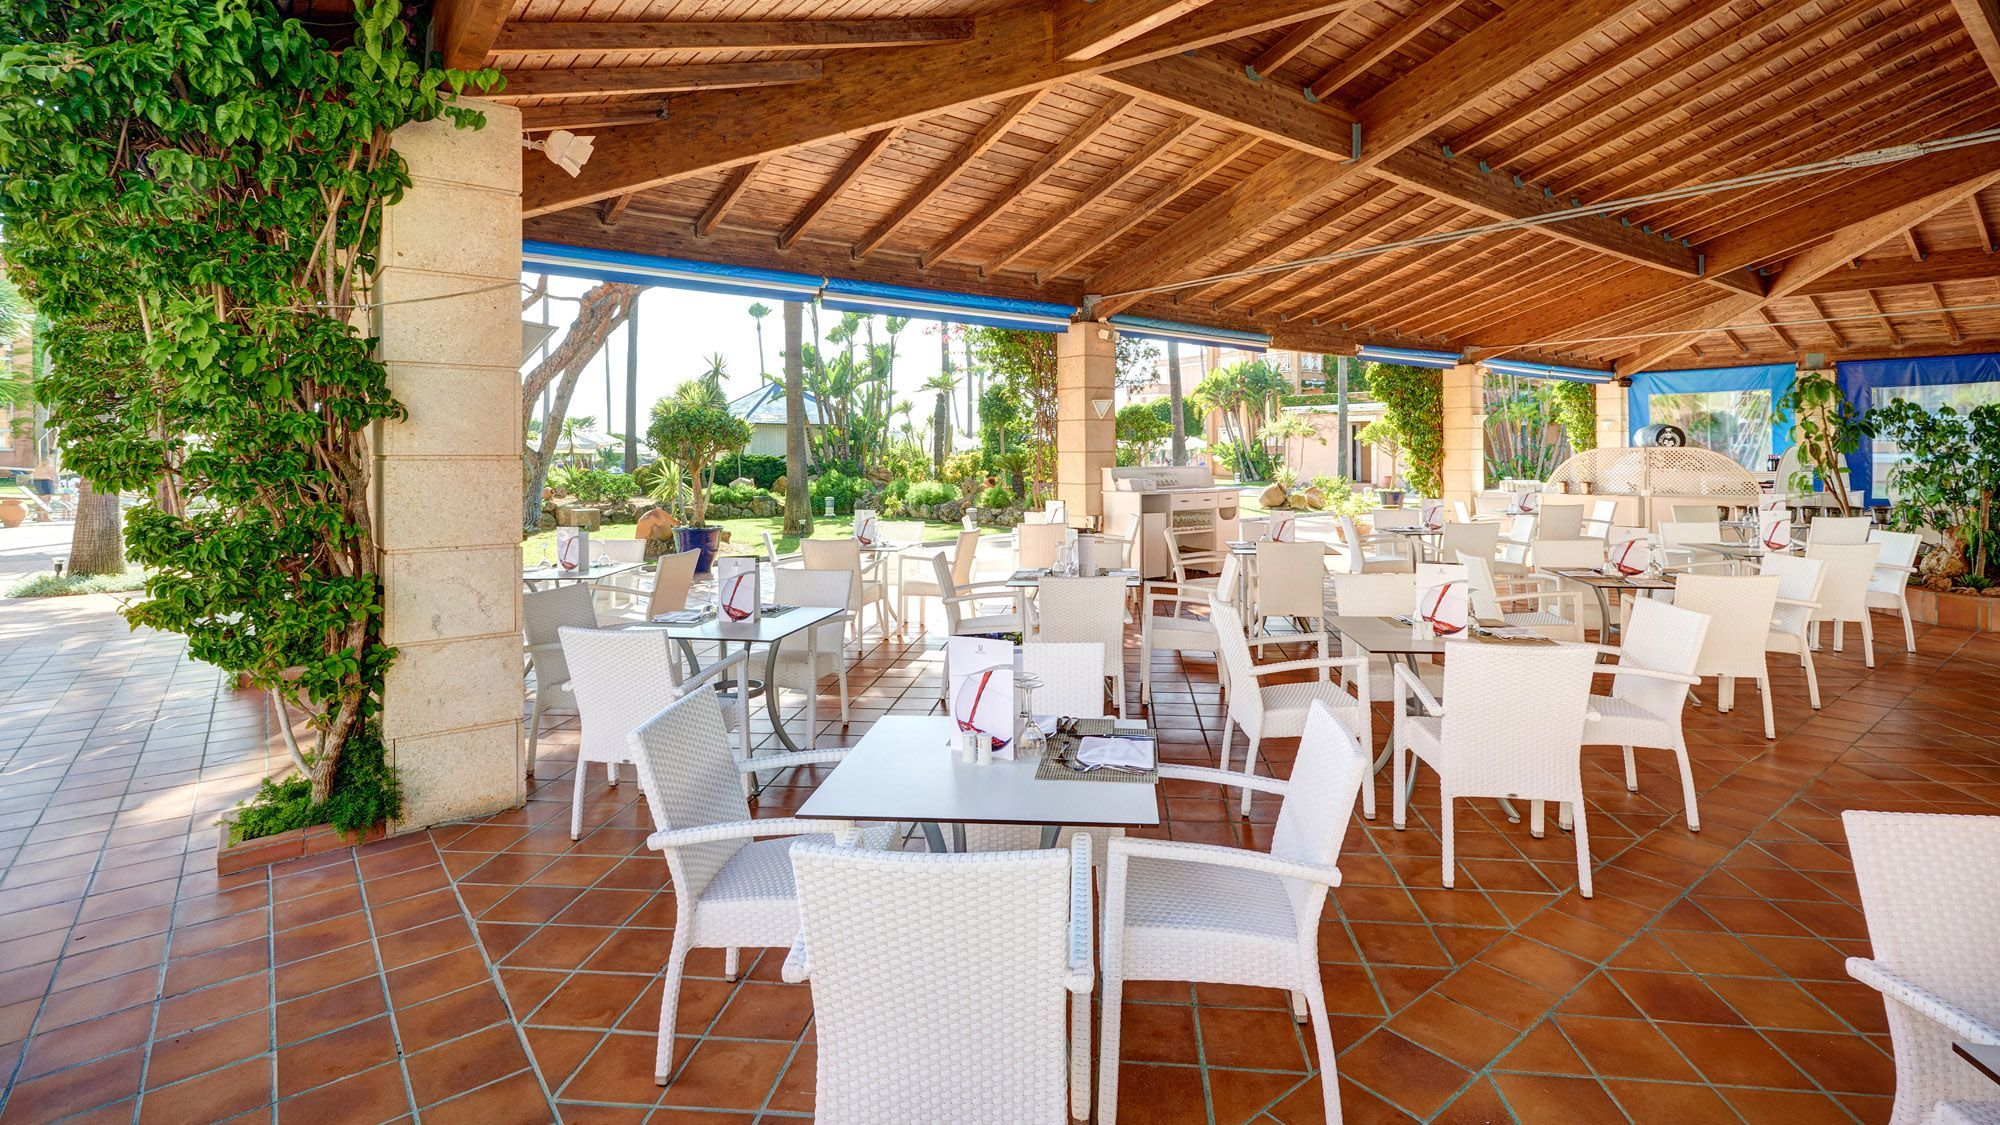 Hipotels barrosa park photo gallery cadiz for Terrace on the park restaurant